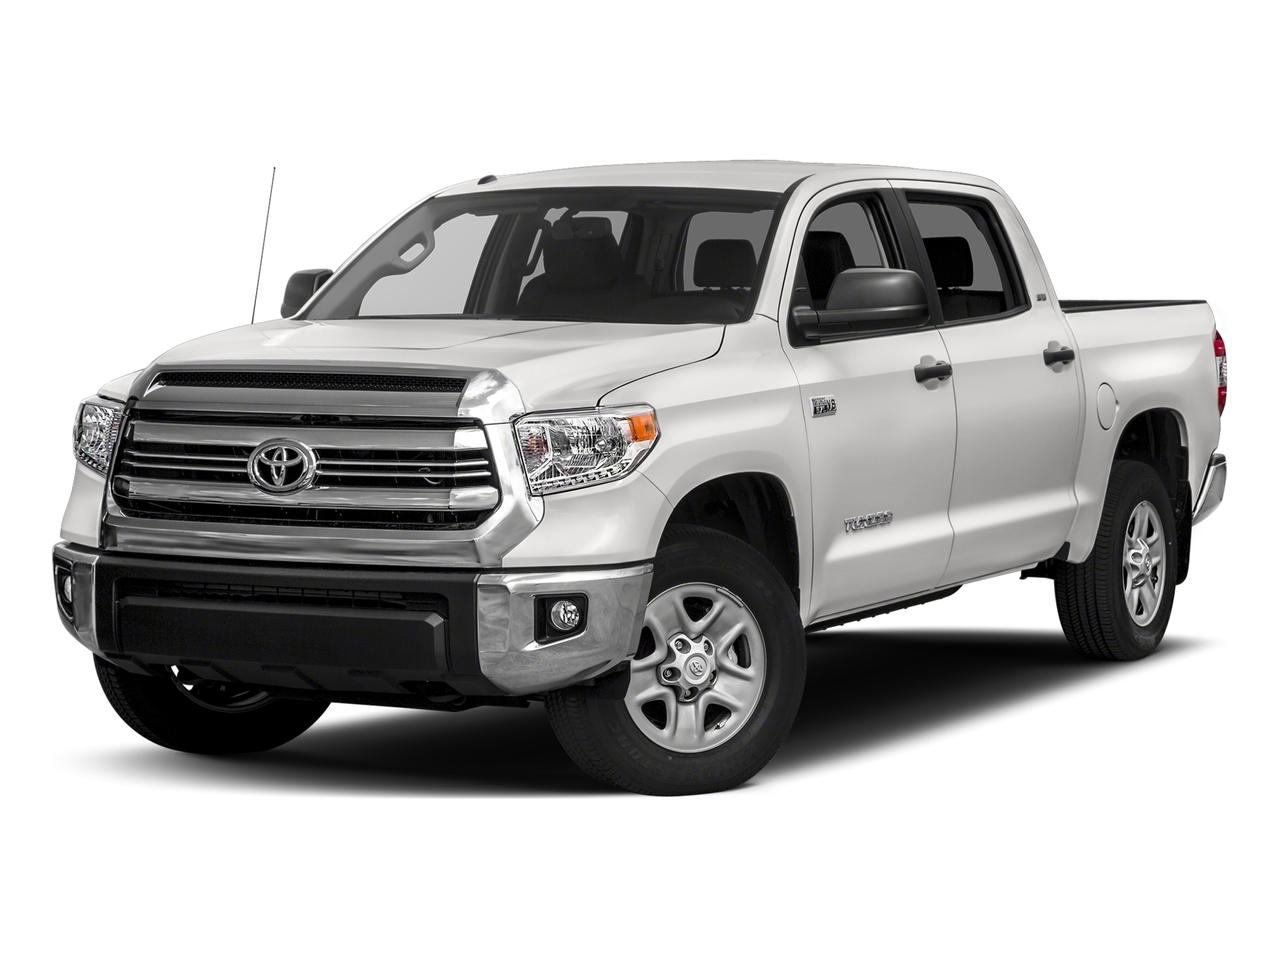 2017 Toyota Tundra 4WD Vehicle Photo in BEND, OR 97701-5133